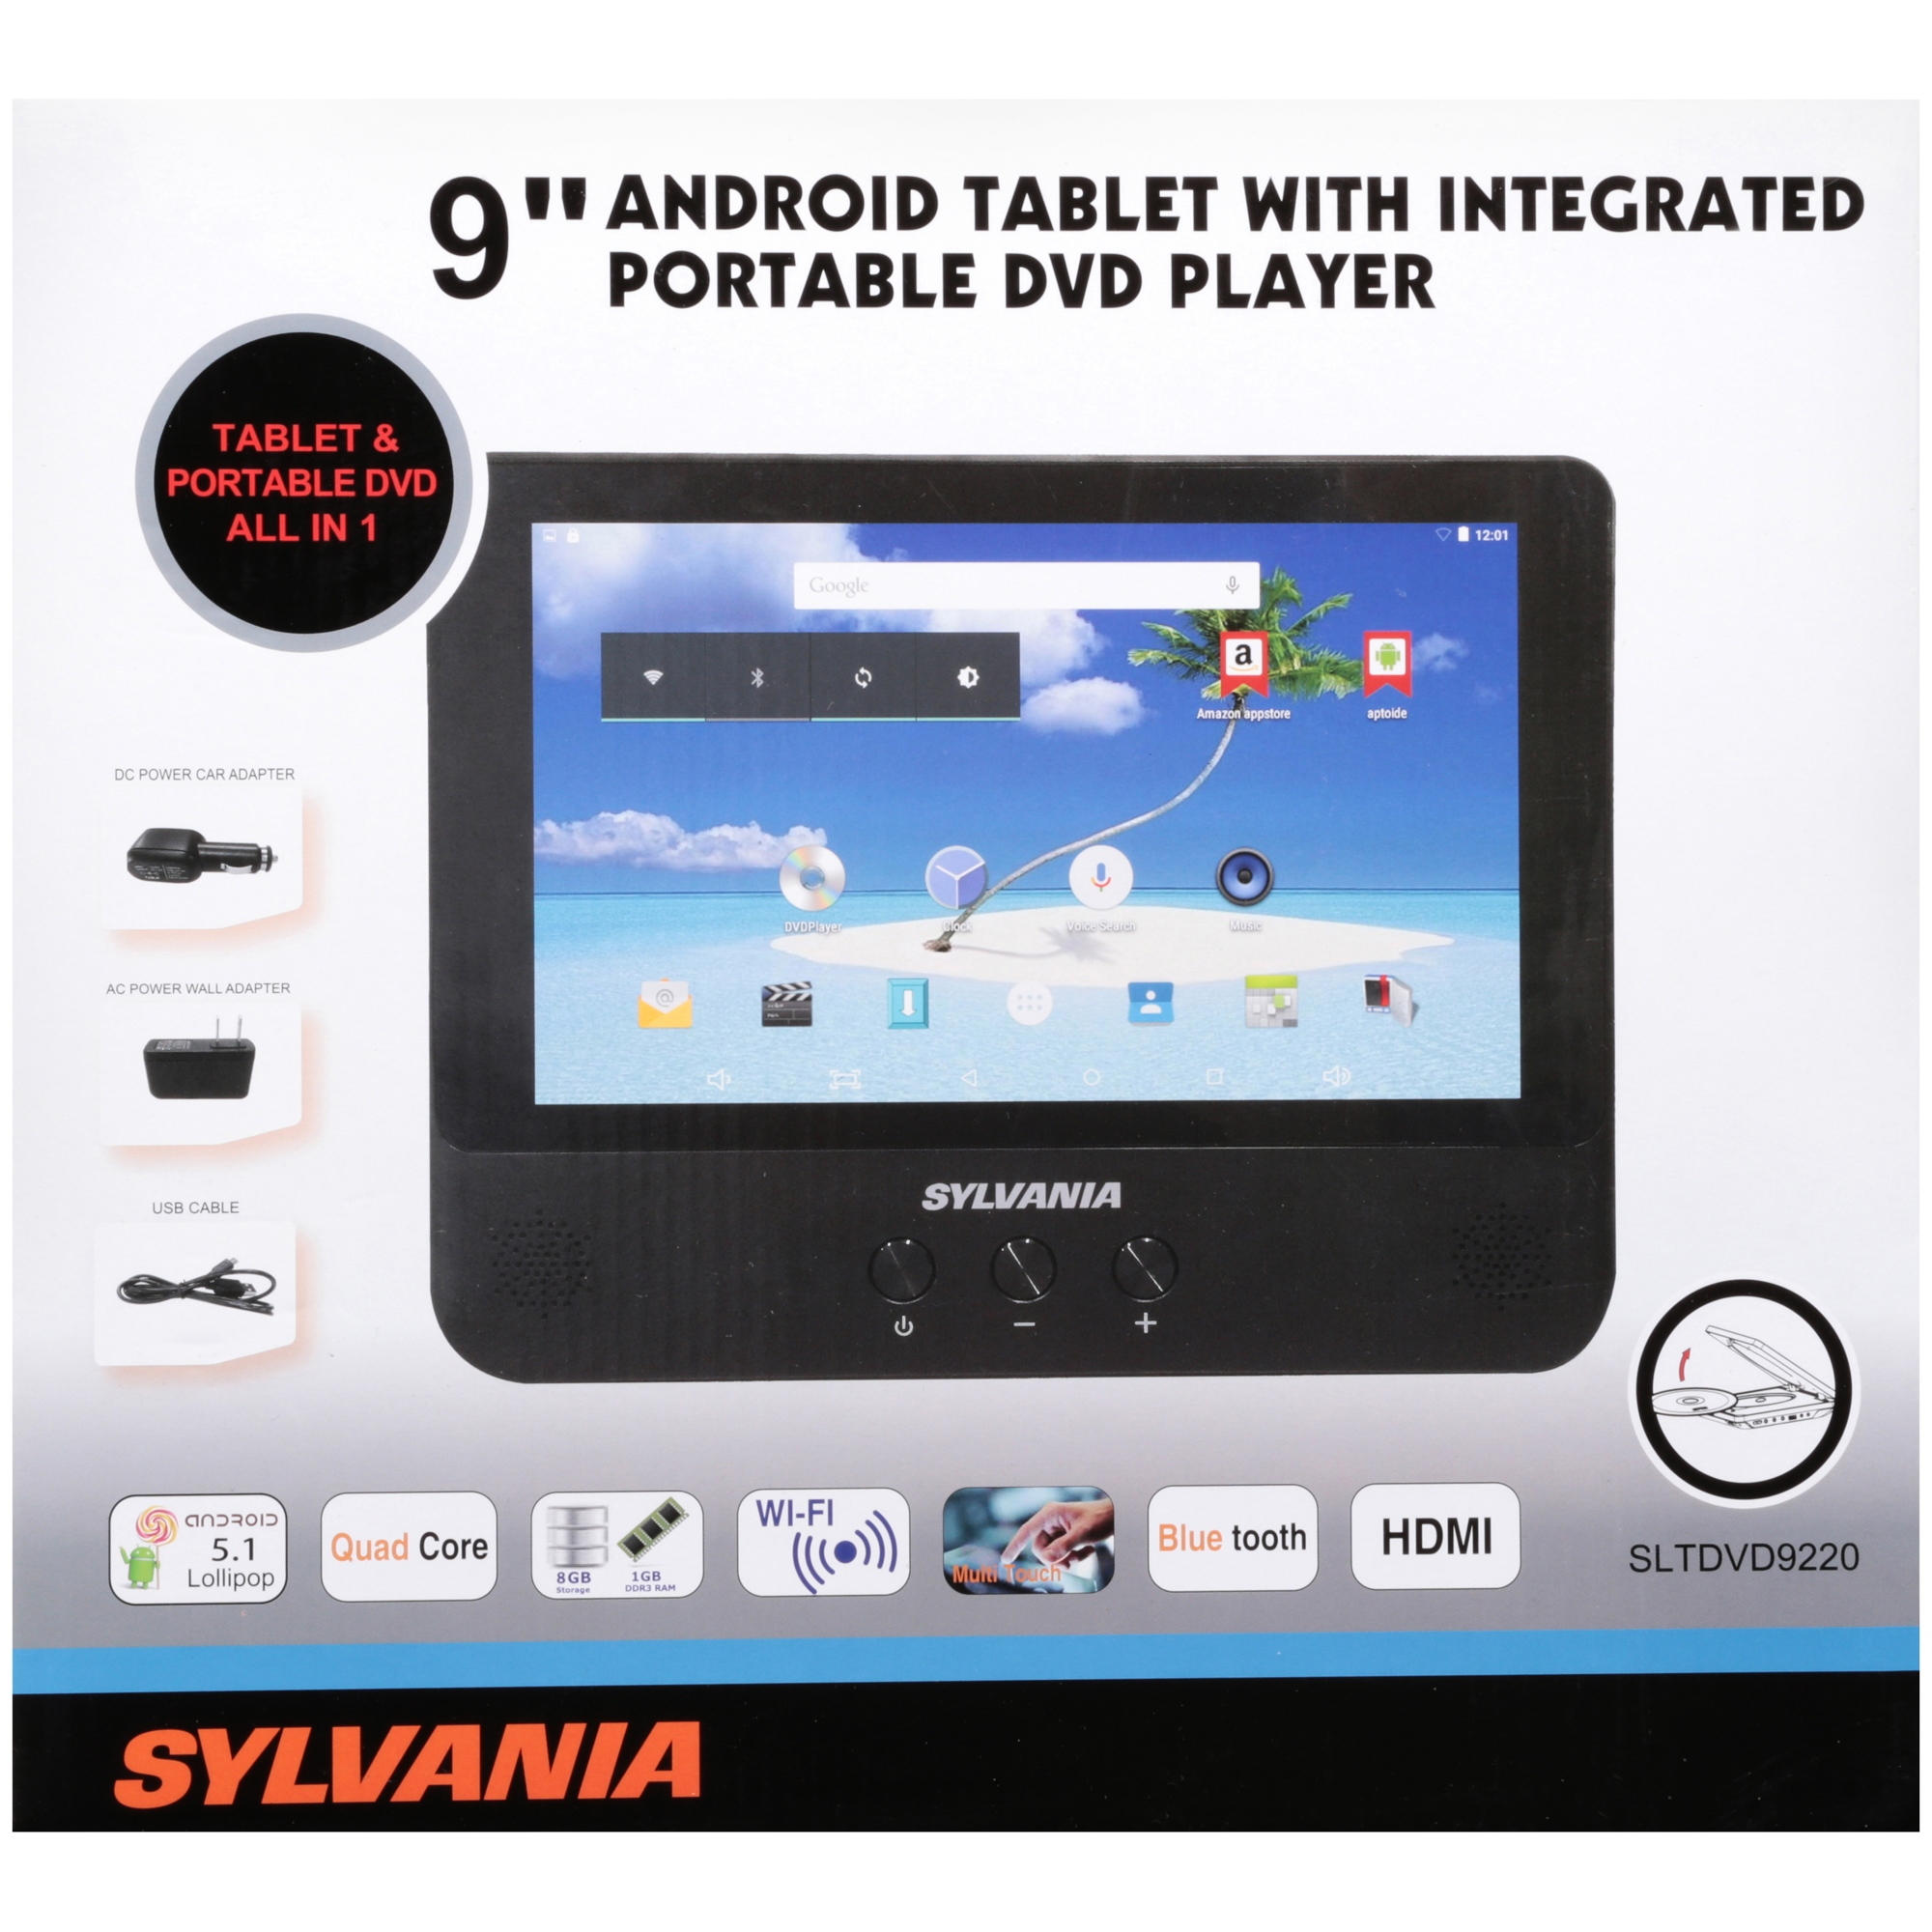 sylvania 9 androidtablet with integrated portable dvd player rh walmart com 7 Inch Android Tablet Android Tablet User Guide